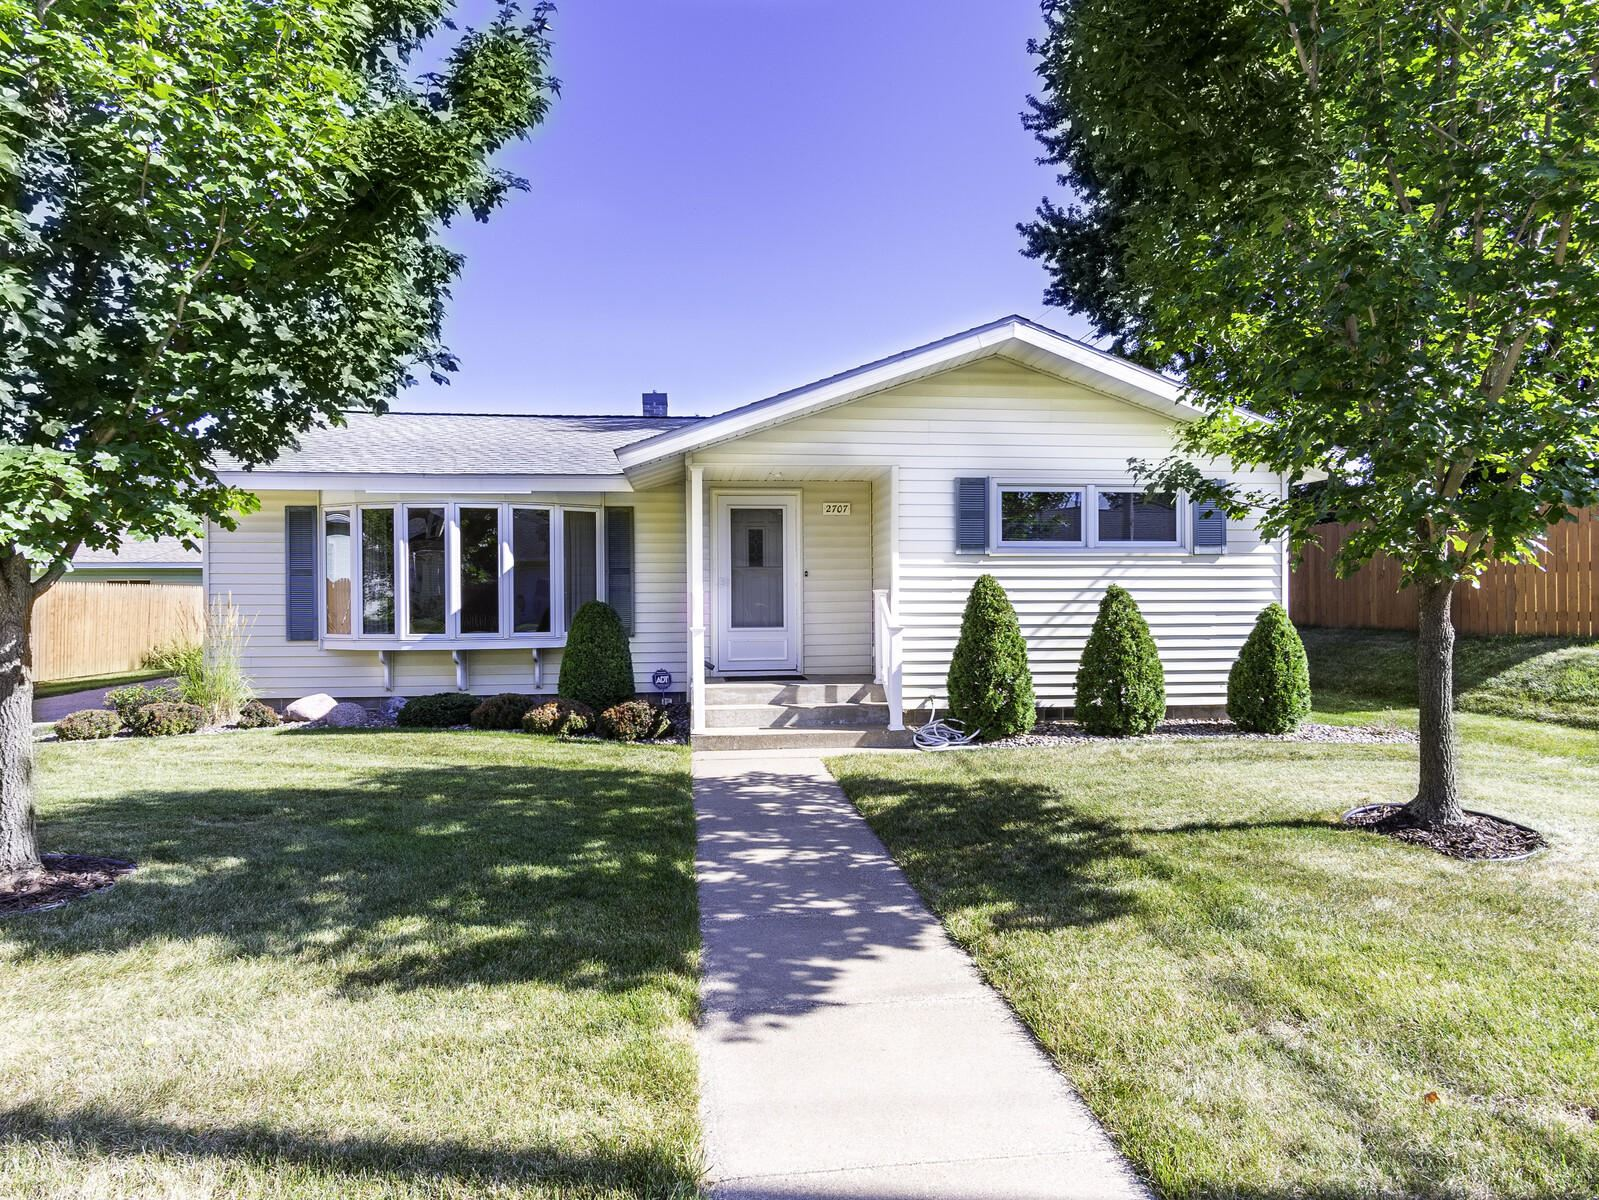 2707 HIGHLAND ST, La Crosse, WI 54601 - MLS#: 1702486